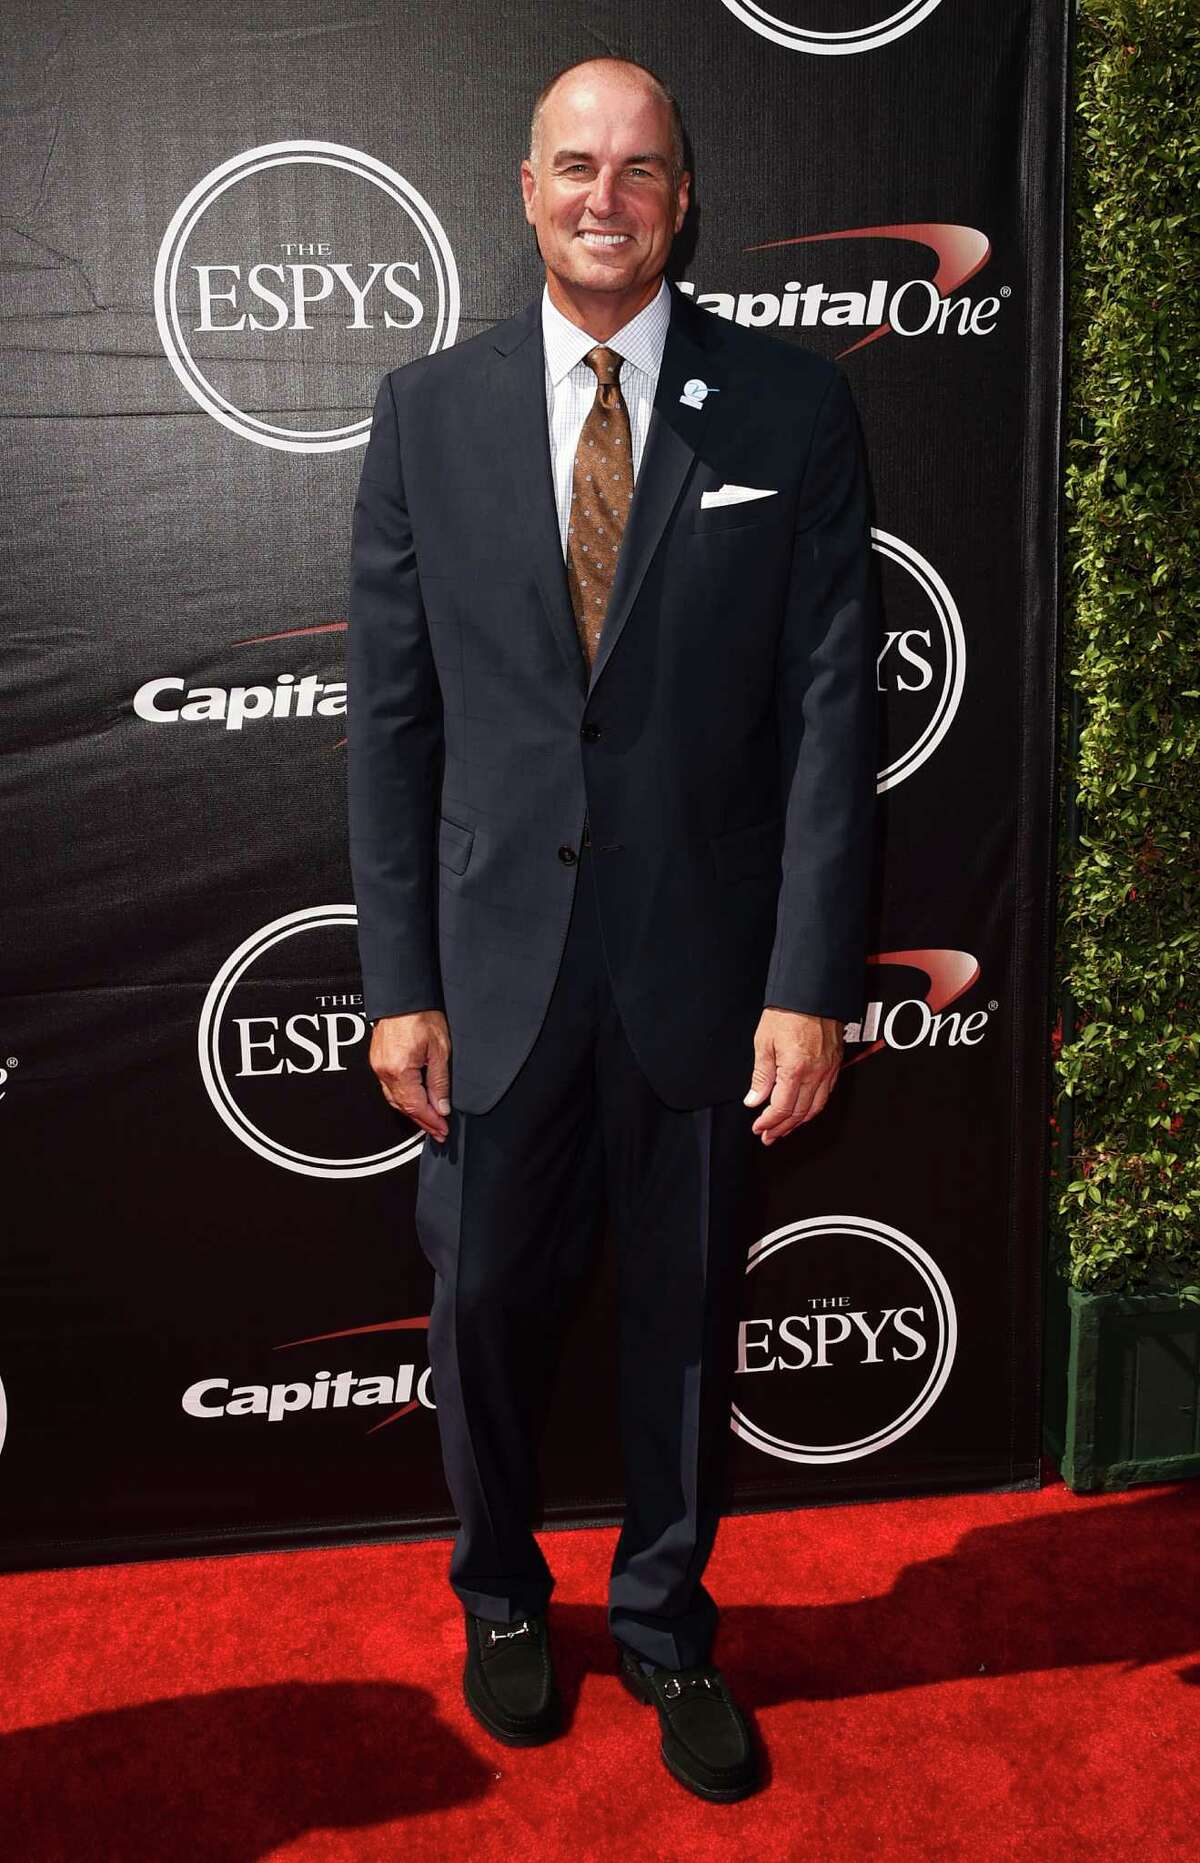 LOS ANGELES, CA - JULY 15: Basketball analyst Jay Bilas attends The 2015 ESPYS at Microsoft Theater on July 15, 2015 in Los Angeles, California. (Photo by Jason Merritt/Getty Images)